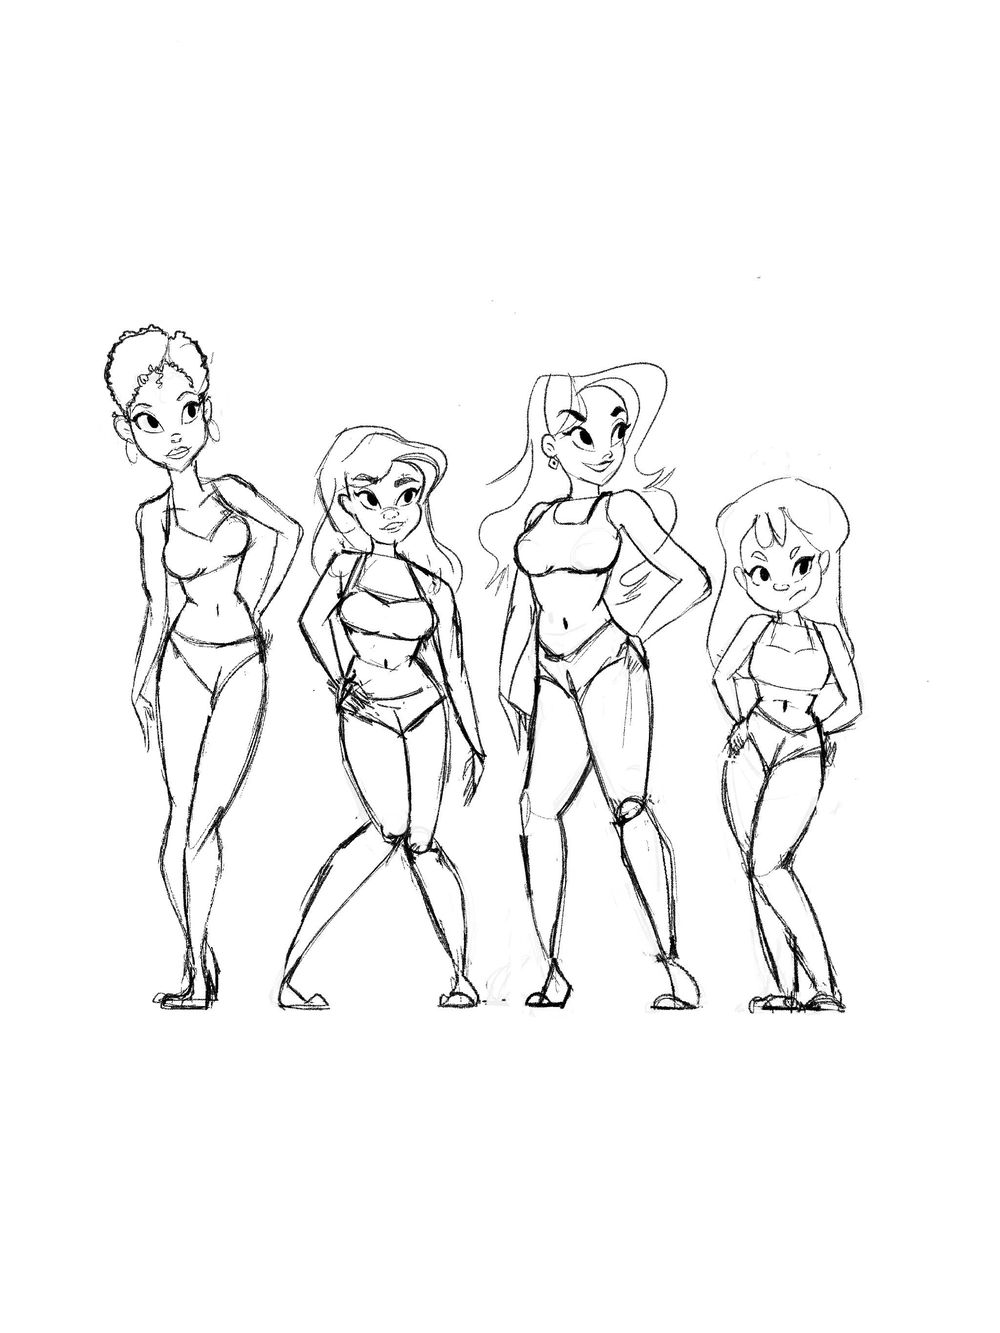 Women line-up character design assignment - image 2 - student project